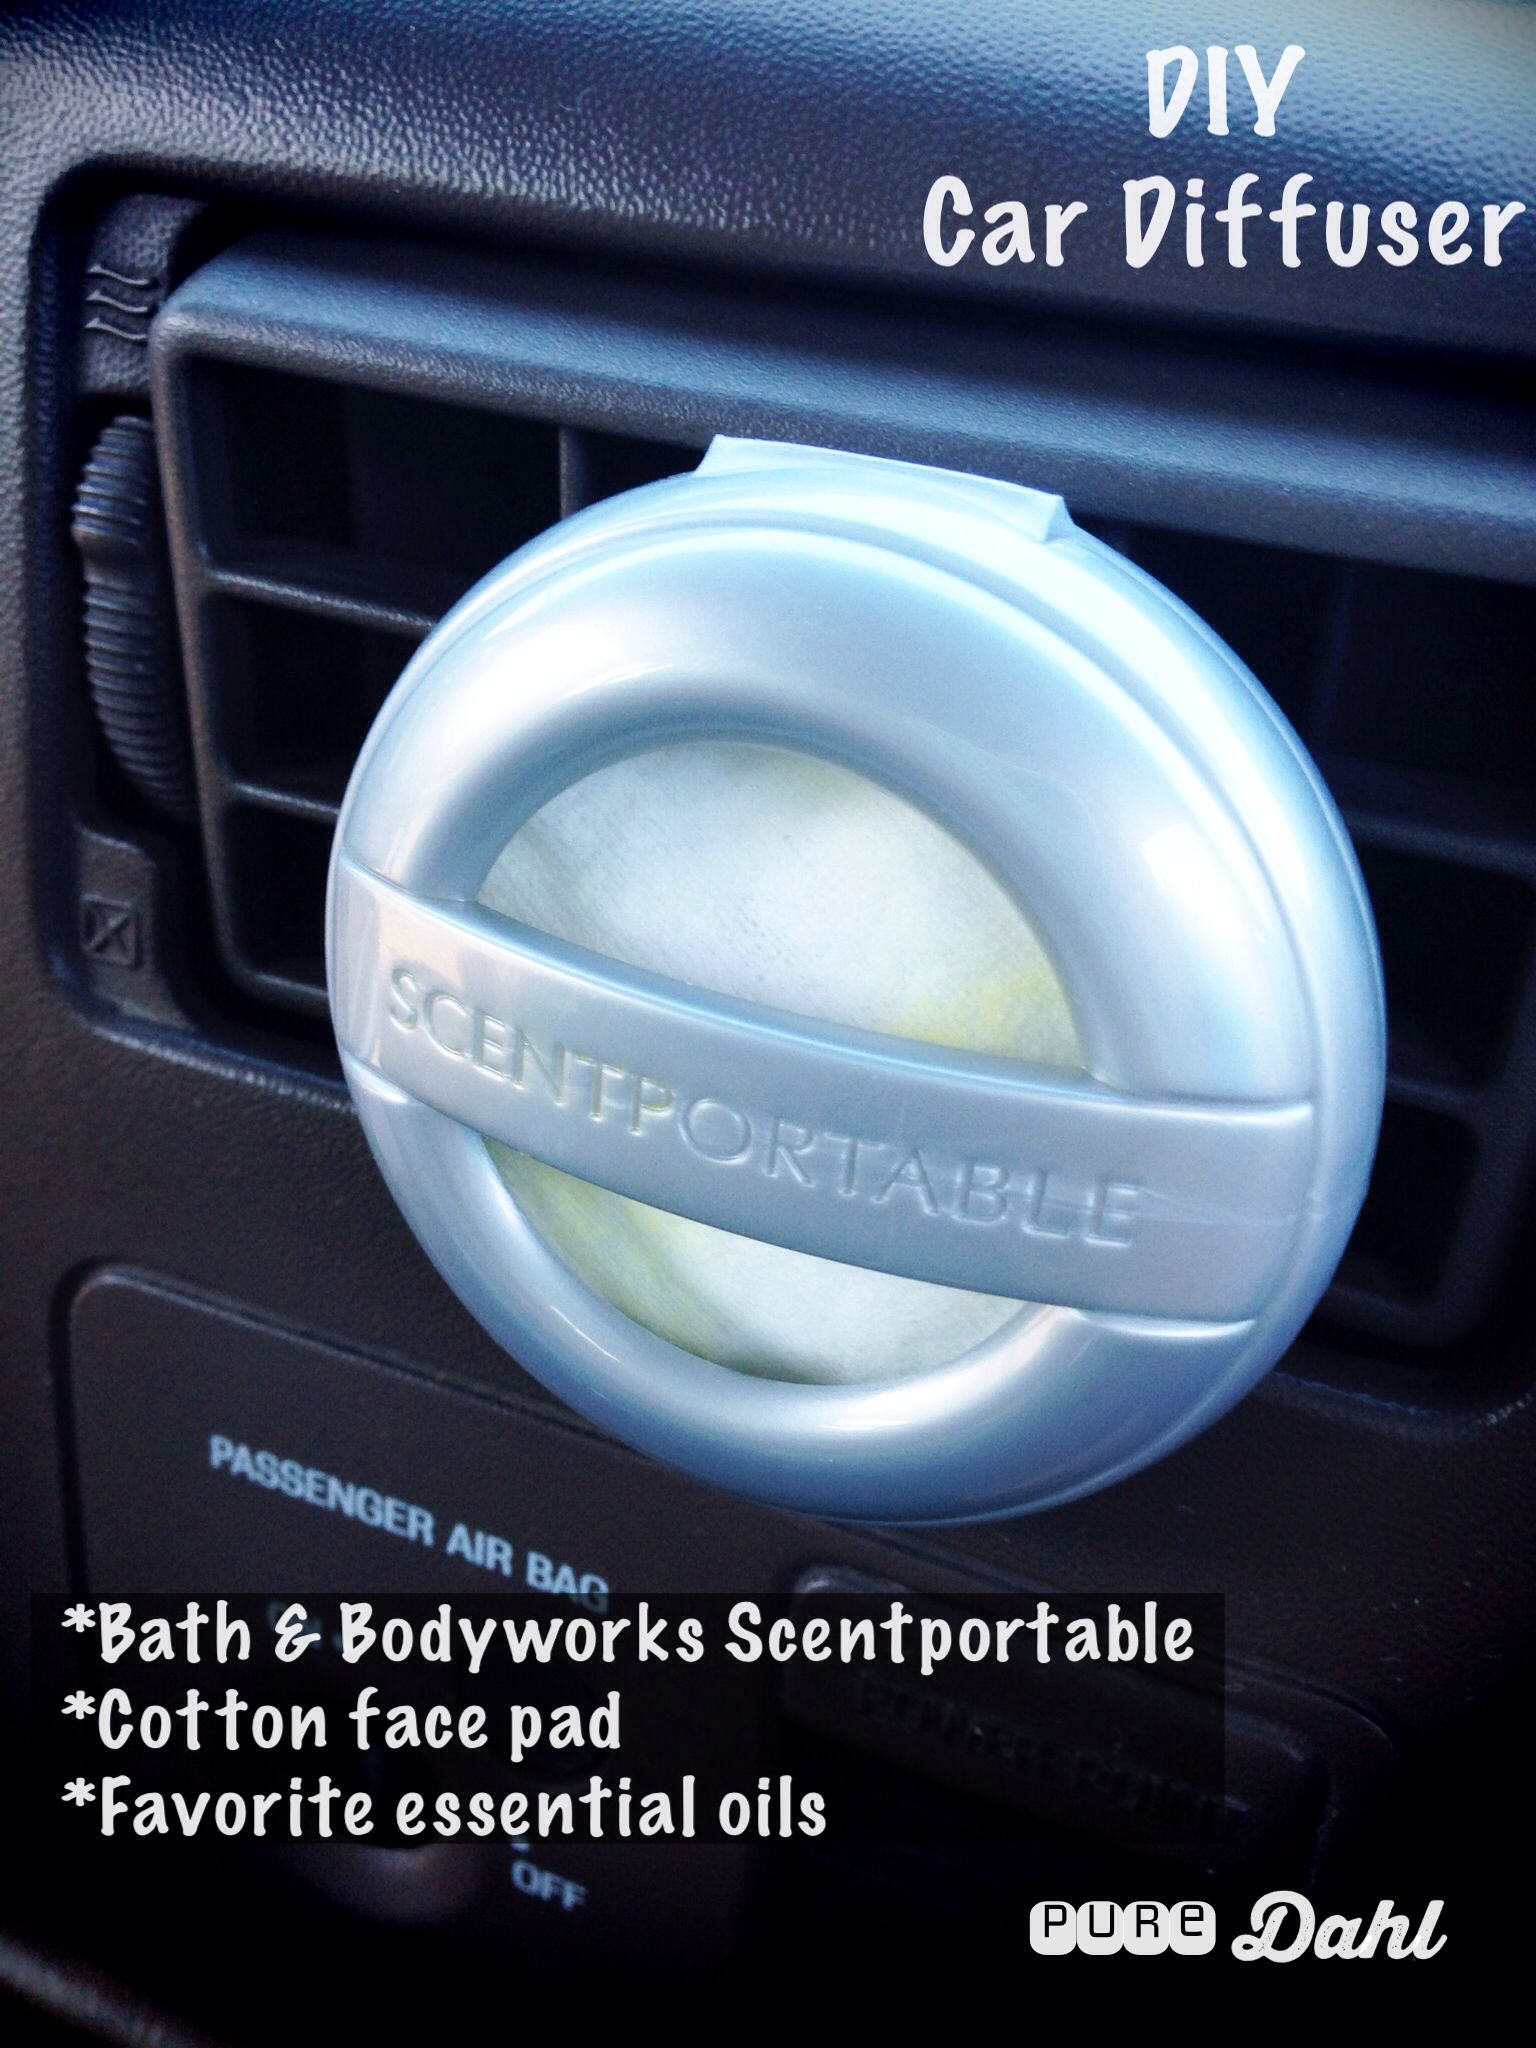 Diy car diffuser using bath bodyworks scentportable www mydoterra com friendsandfamily